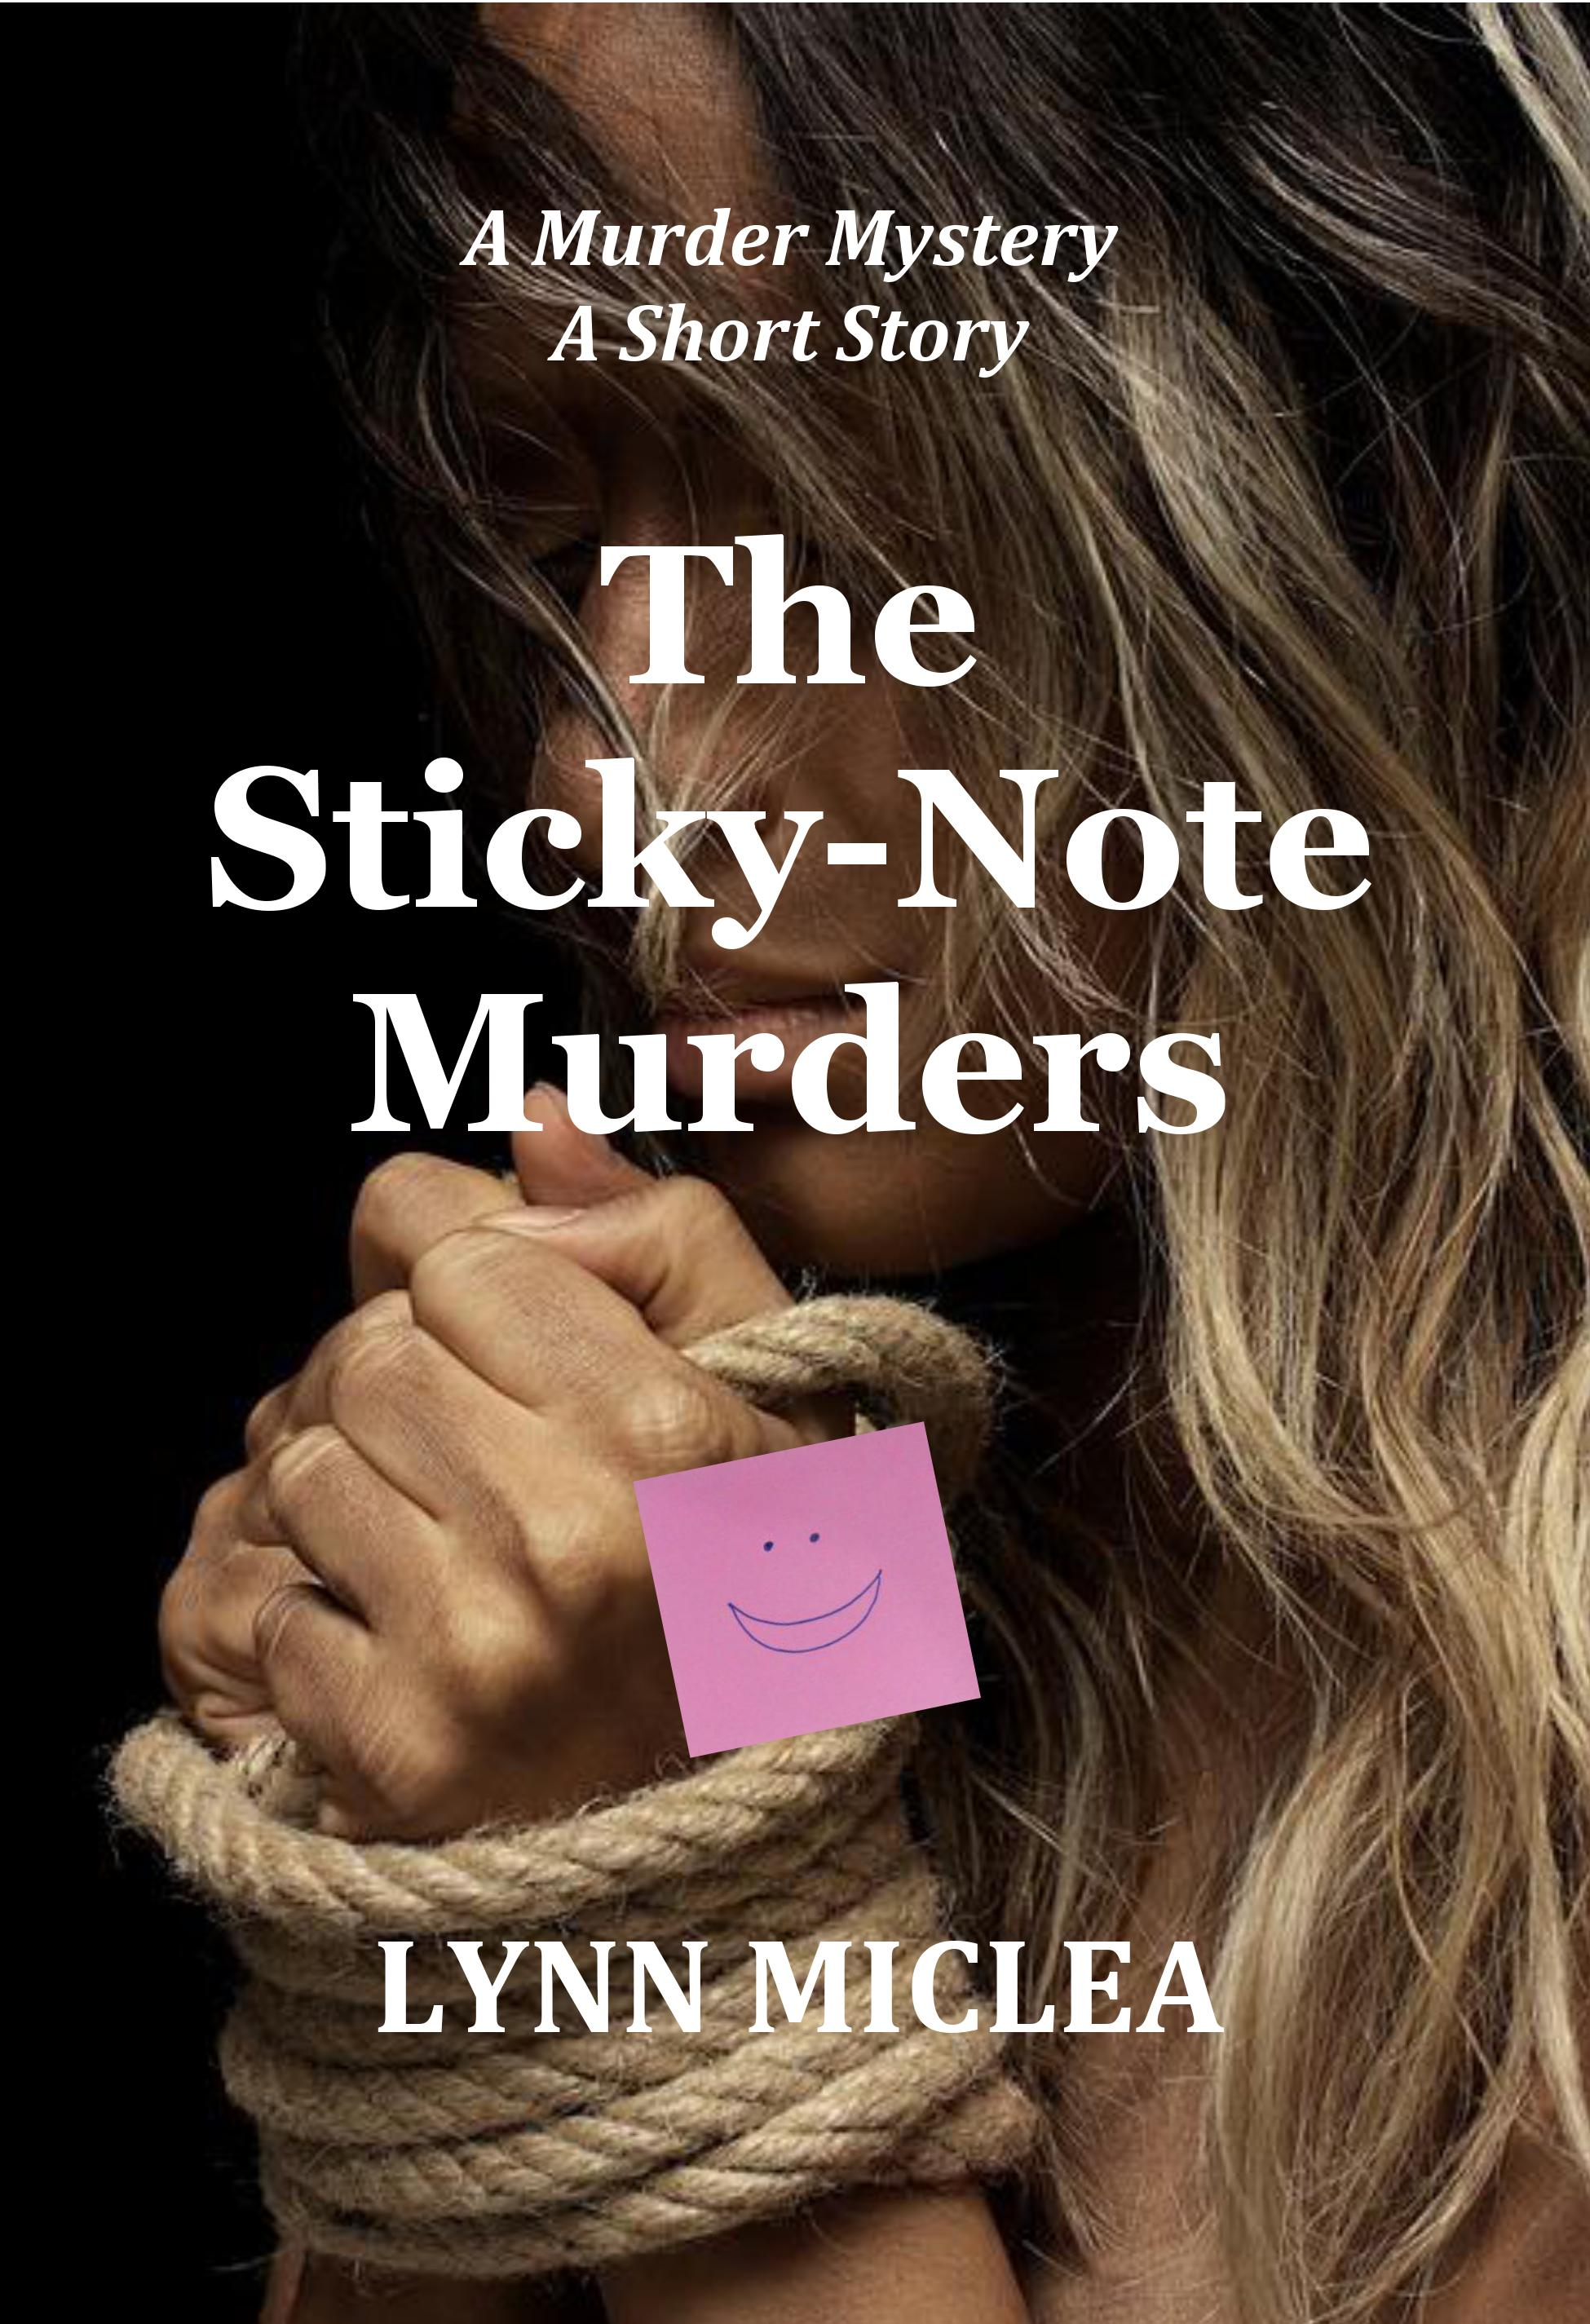 The Sticky-Note Murders